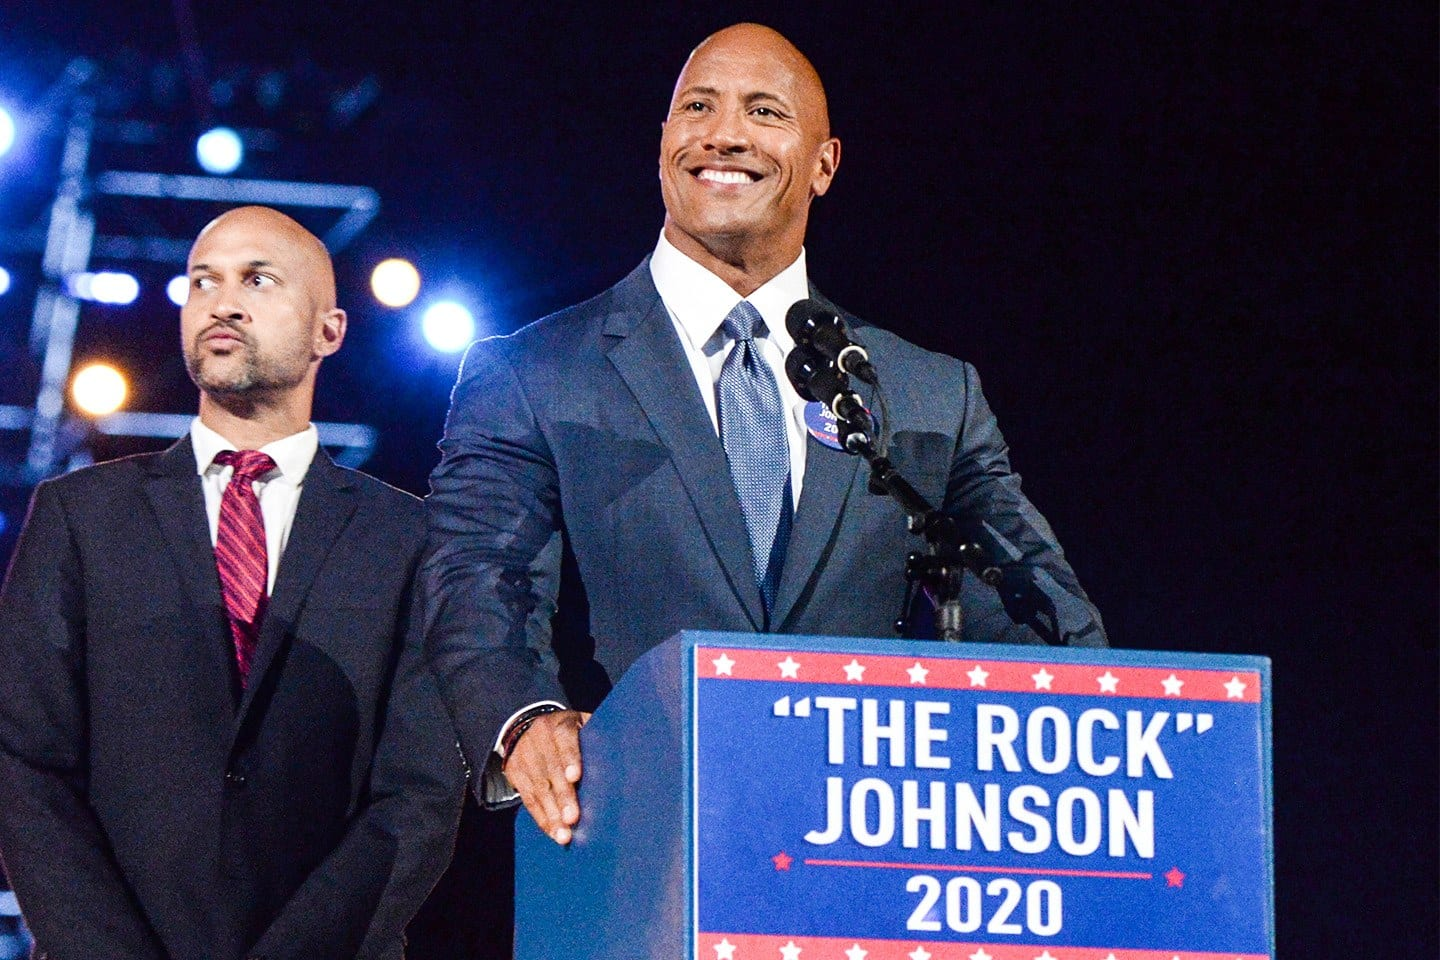 The Rock running for the President of USA in 2020?